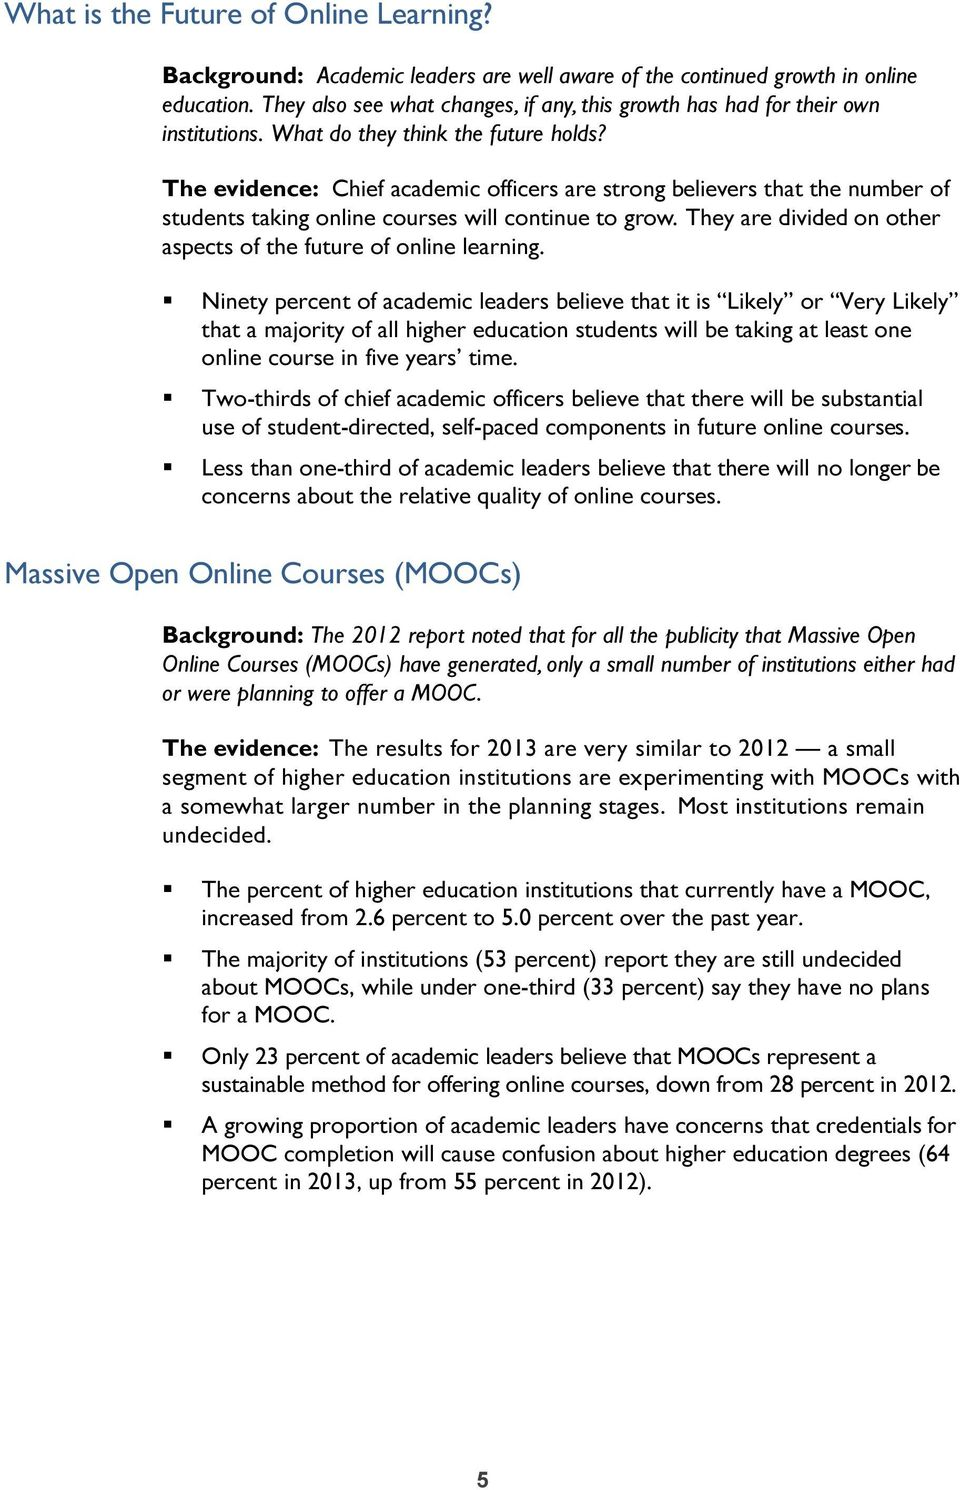 The evidence: Chief academic officers are strong believers that the number of students taking online courses will continue to grow. They are divided on other aspects of the future of online learning.